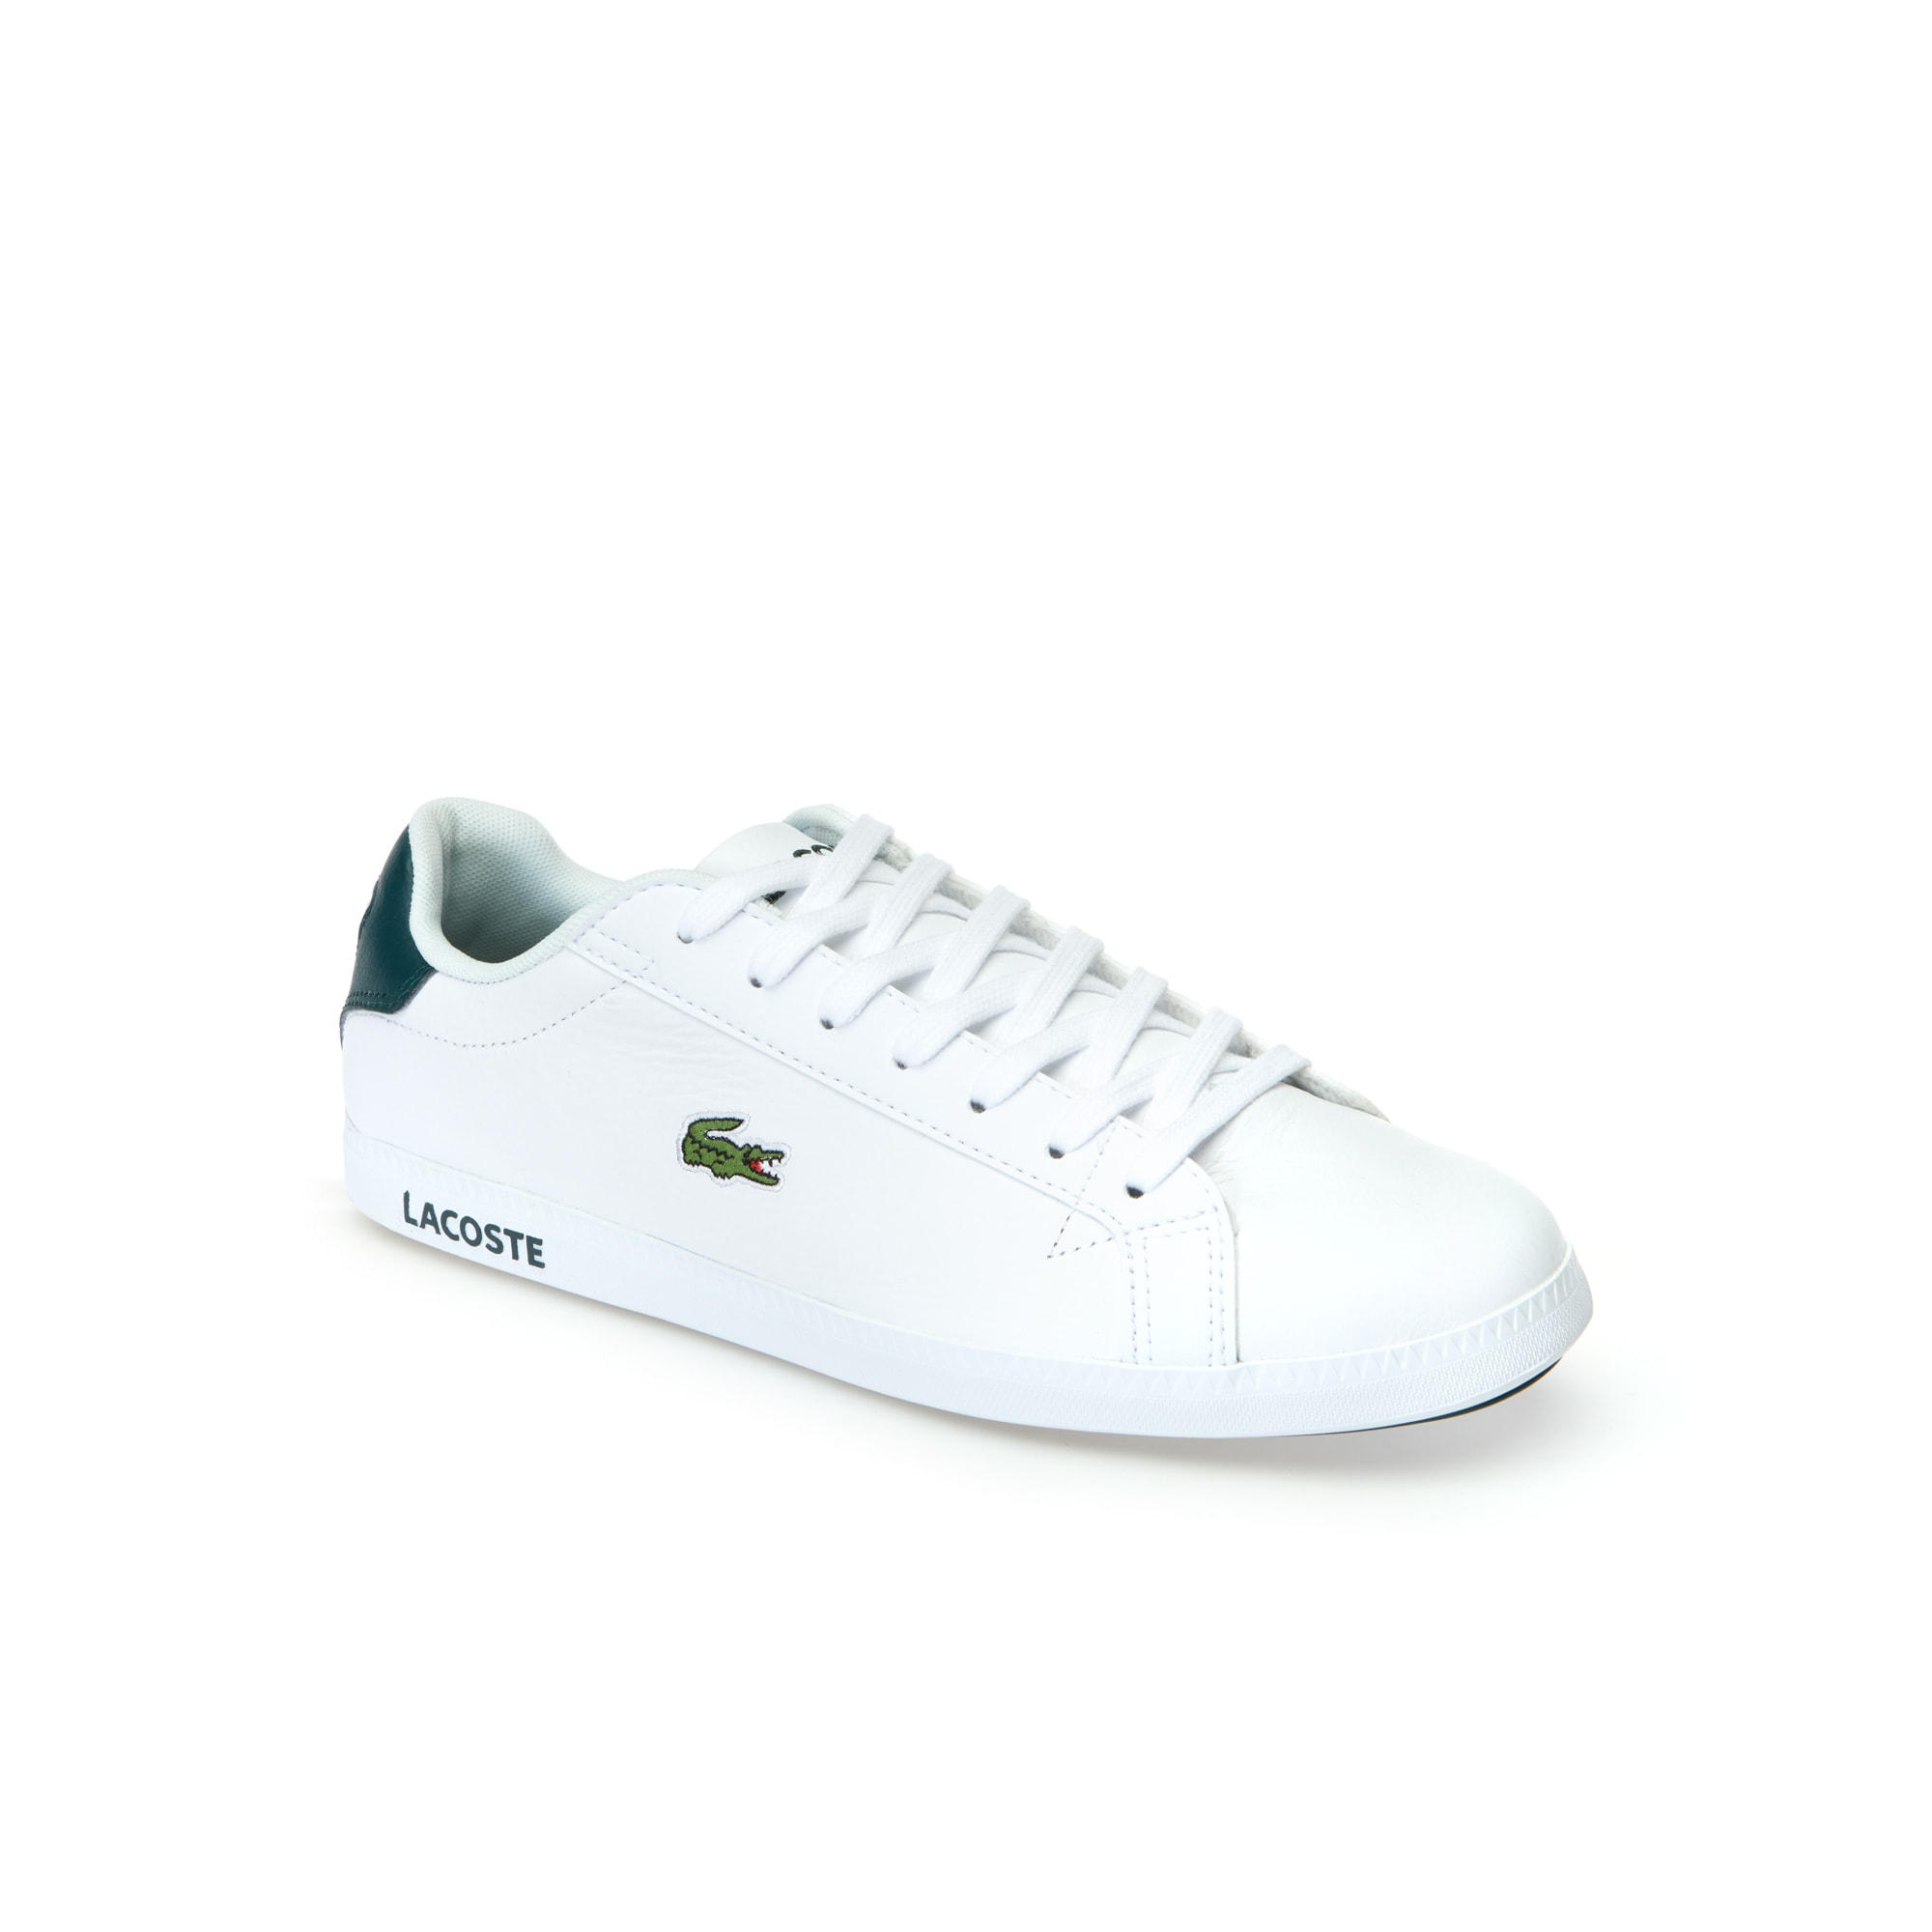 lacoste shoes jumia deals sneakers movie